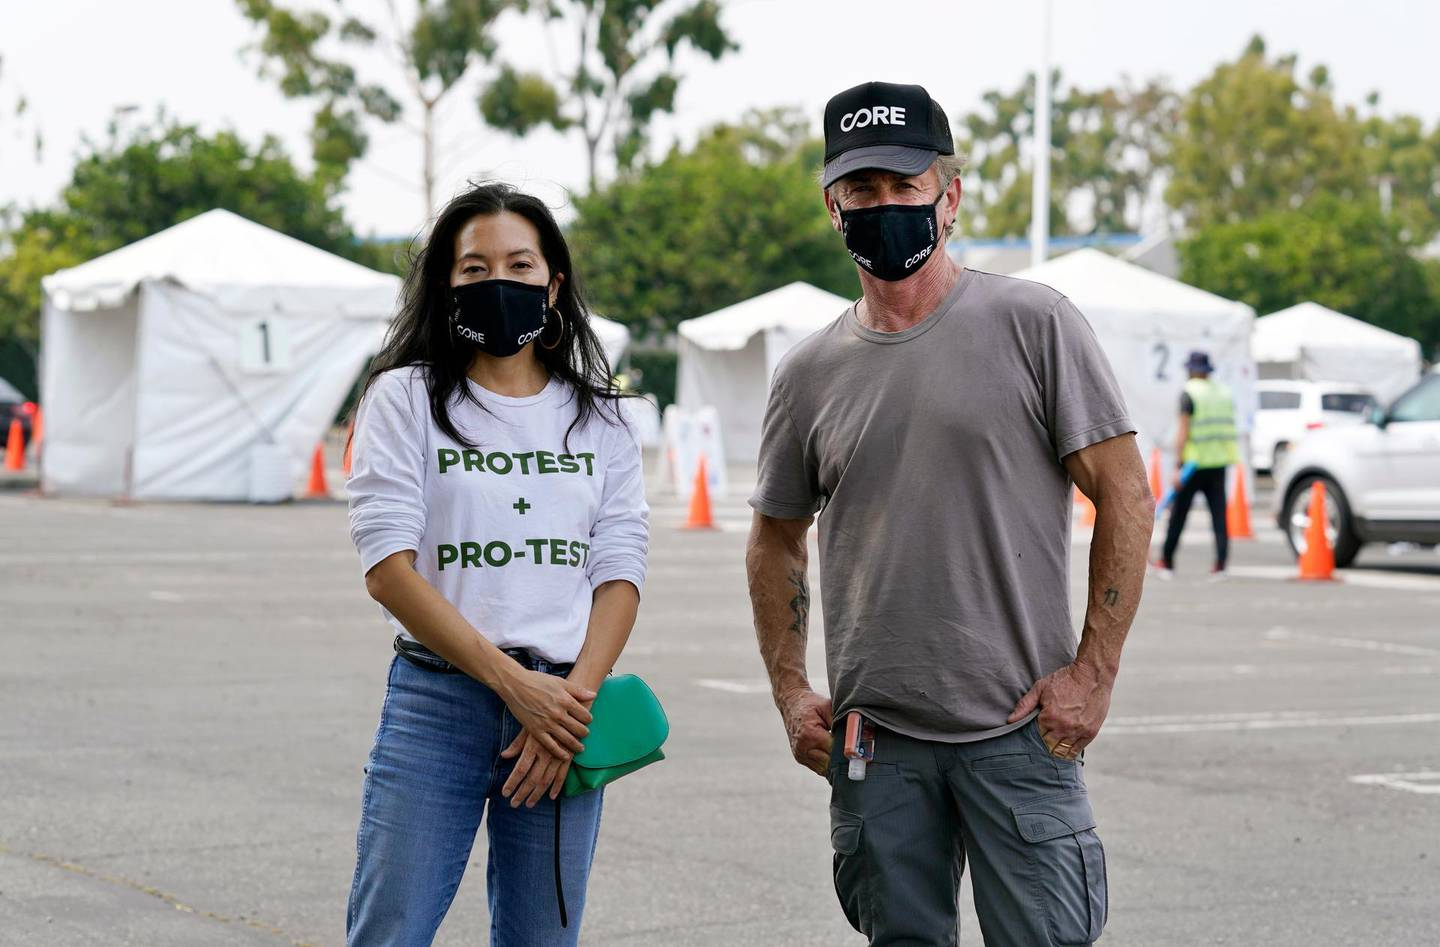 Ann Lee, left, CEO of Community Organized Relief Effort (CORE), and founder Sean Penn pose together at a CORE coronavirus testing site at Crenshaw Christian Center, Friday, Aug. 21, 2020, in Los Angeles. Penn says his organization CORE has made some strides against the coronavirus and he's keeping its mission going by expanding testing and other relief services. (AP Photo/Chris Pizzello)